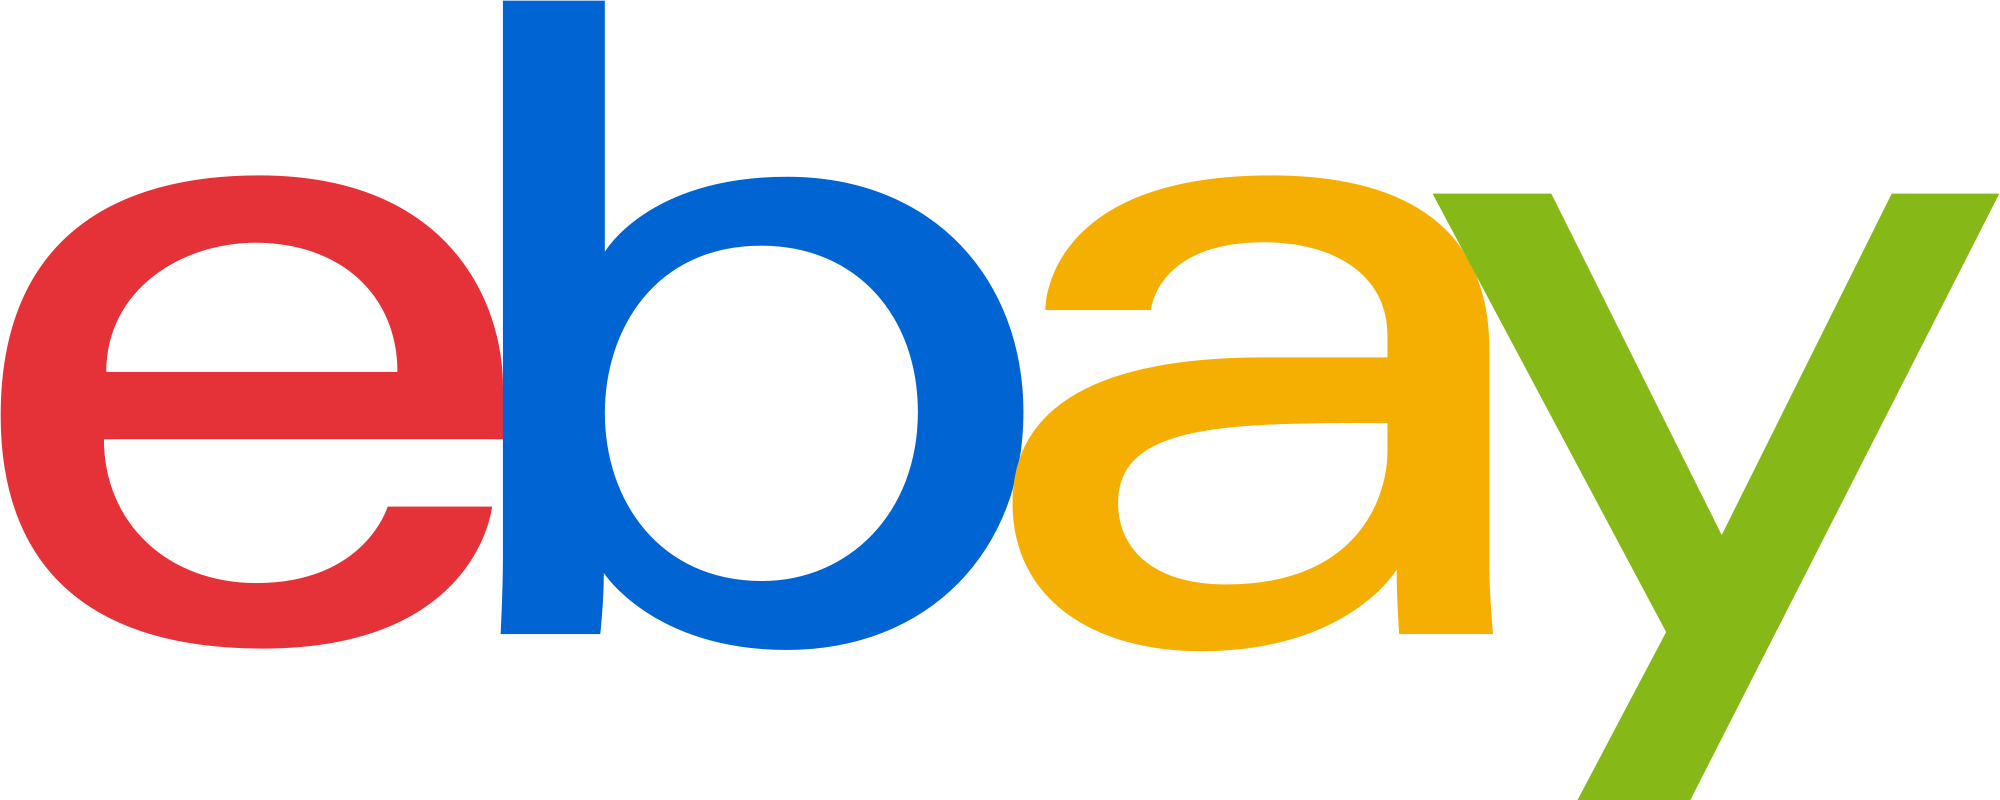 How to remove eBay results from Google Shopping searches